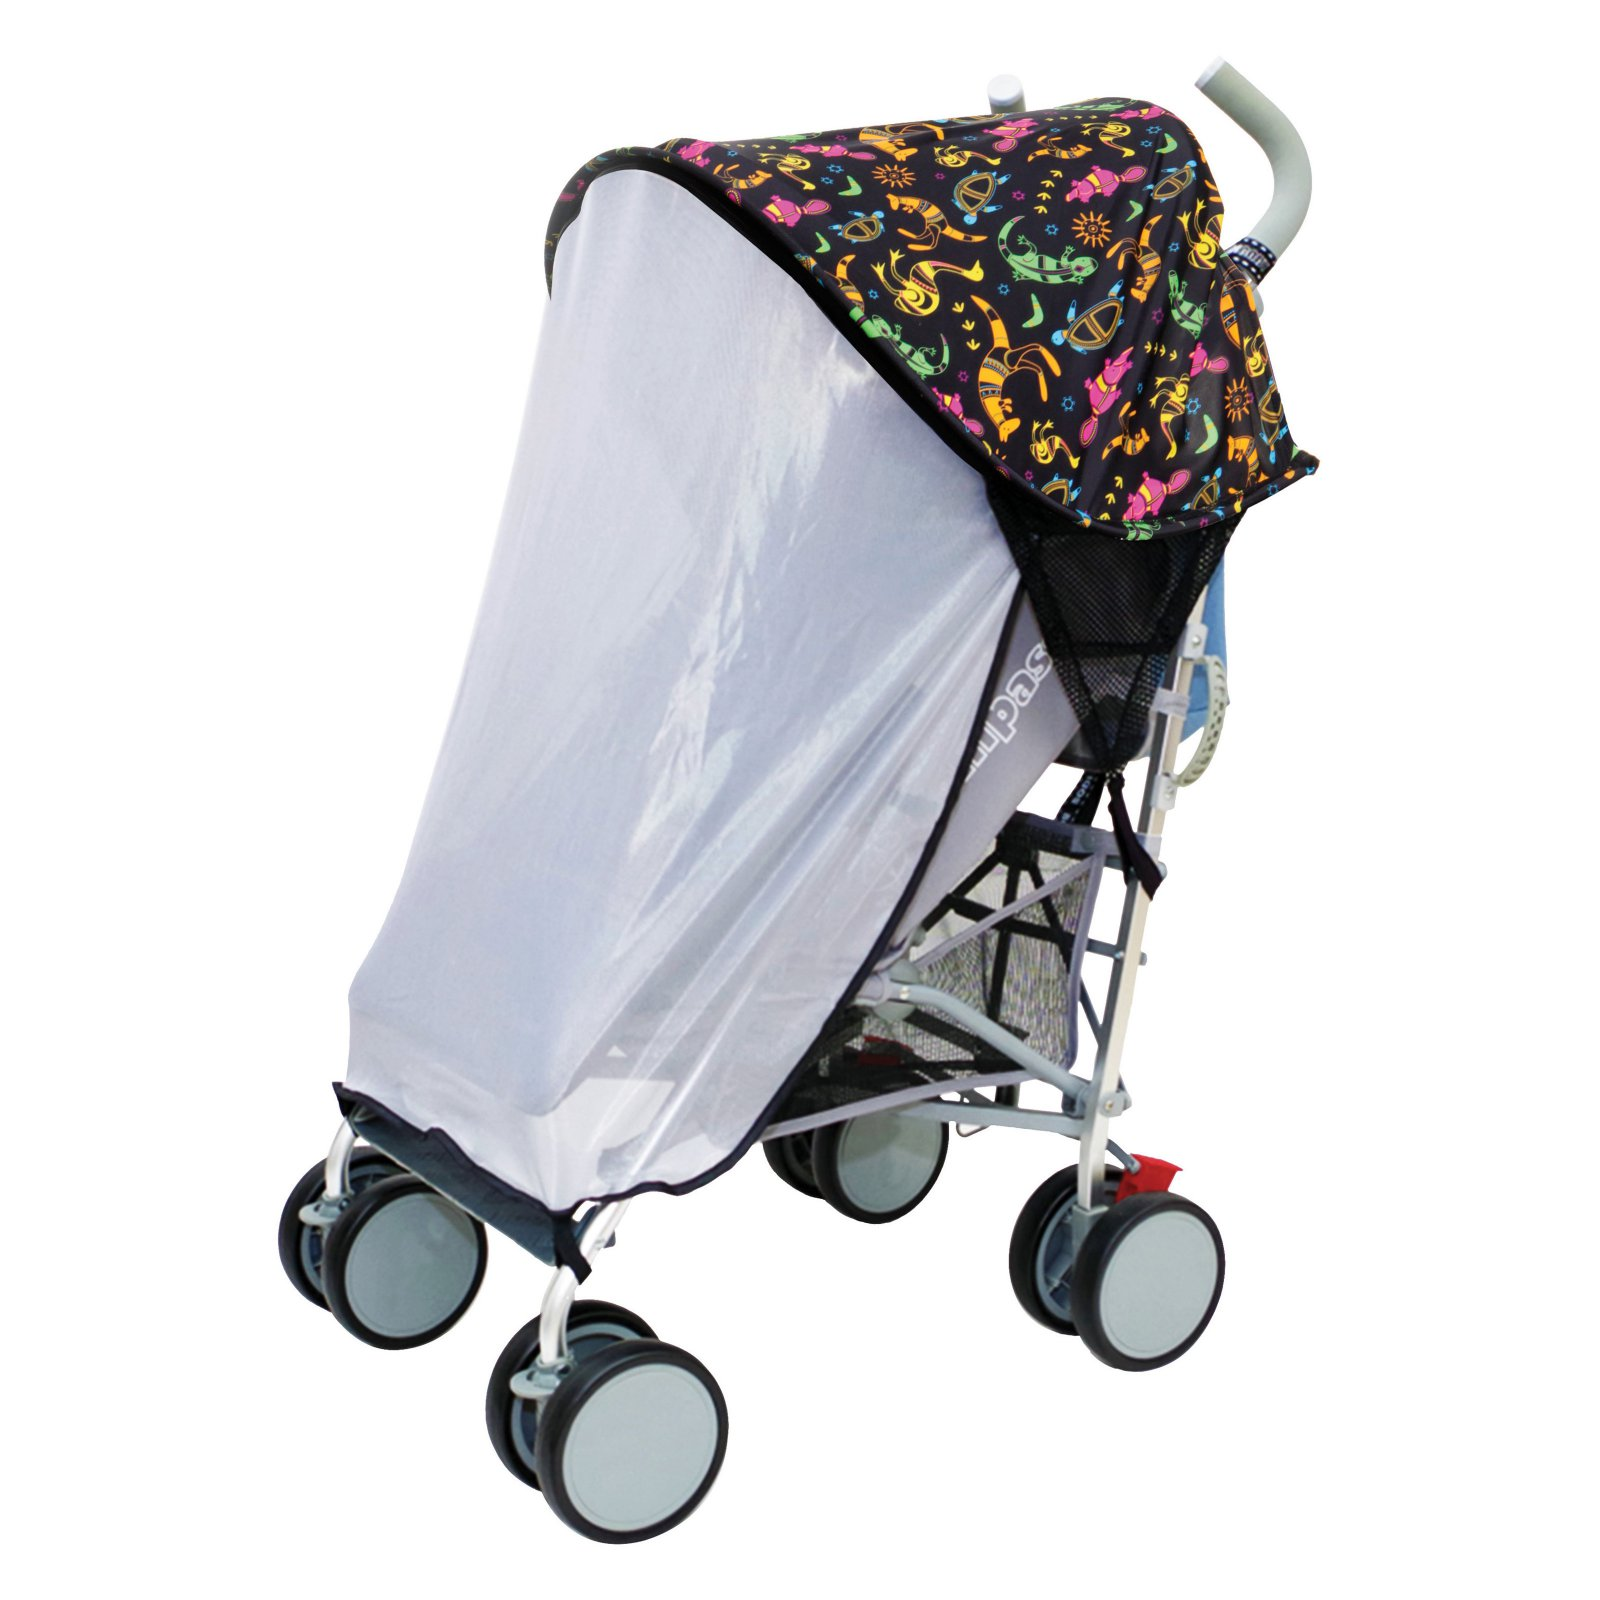 Dreambaby Strollerbuddy Extrenda-Shade with Insect Netting, Print